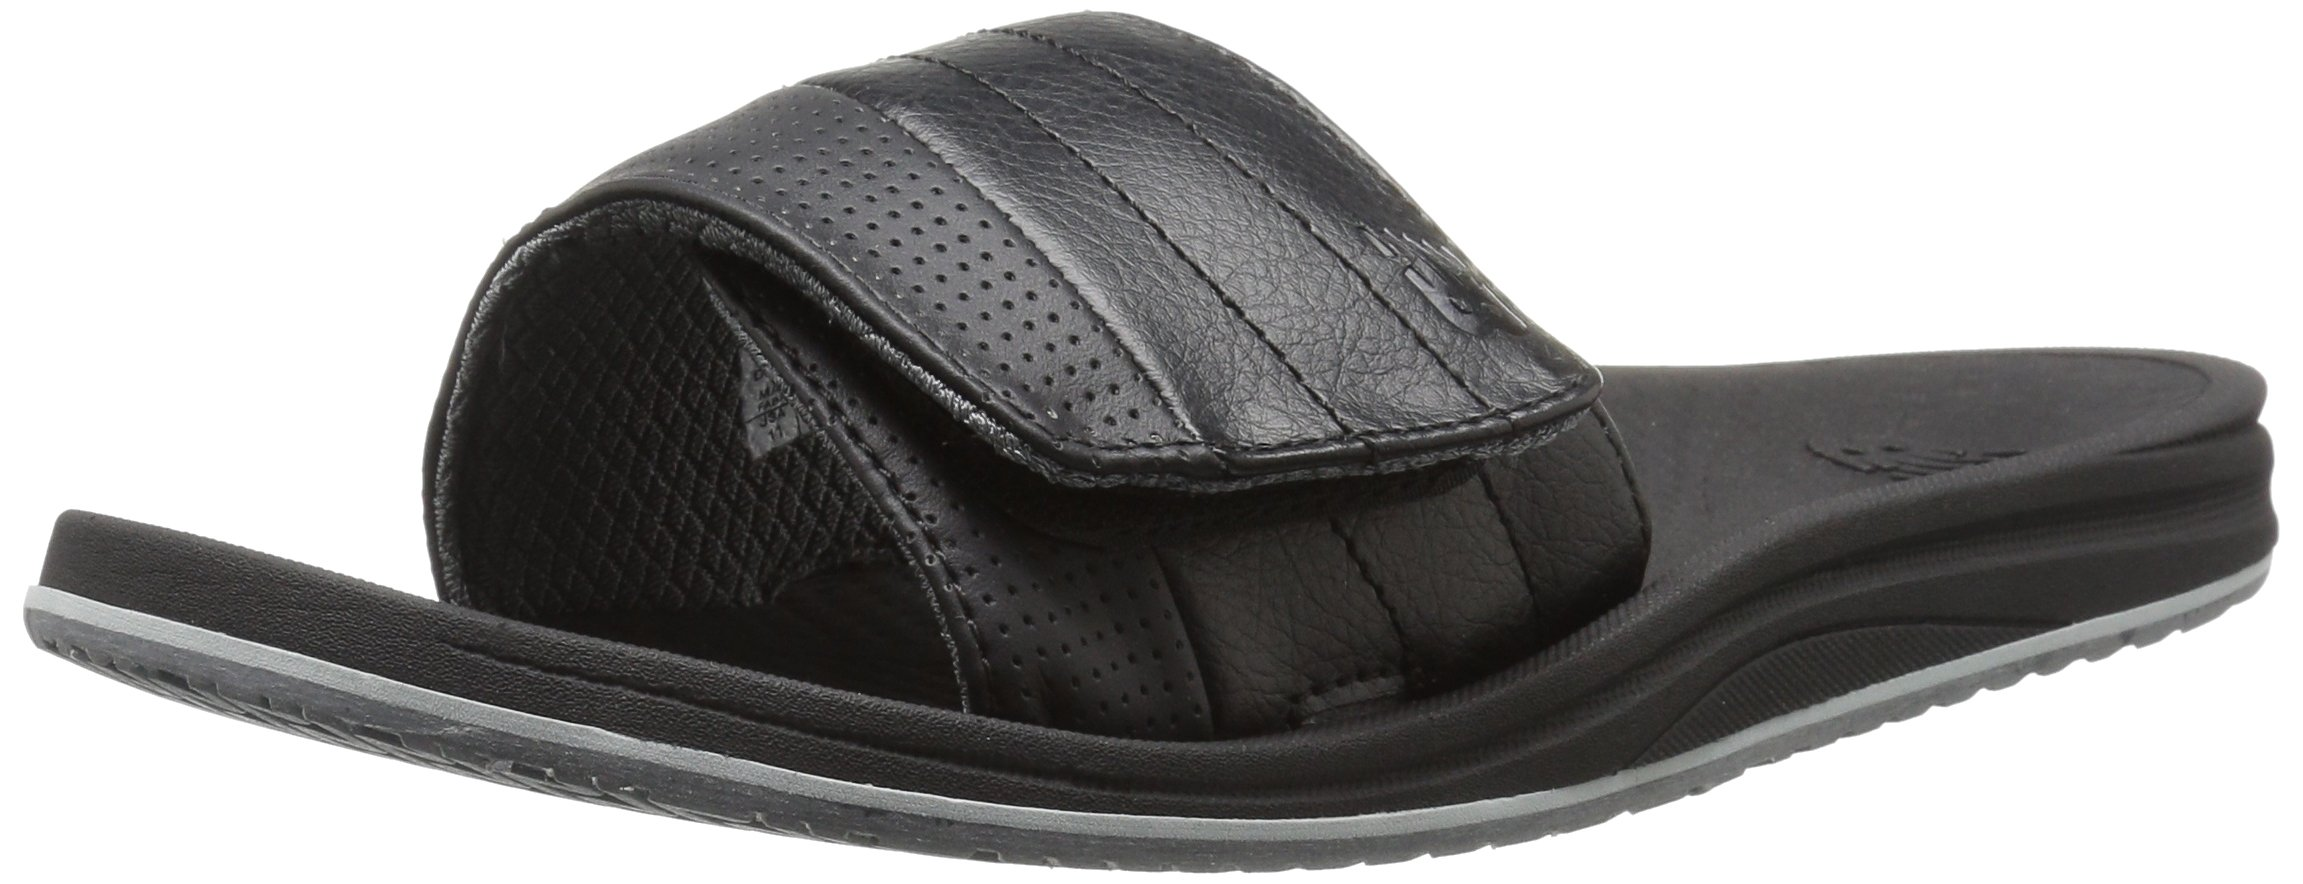 New Balance Men's Recharge Slide Sandal, Black/Grey, 11 4E US